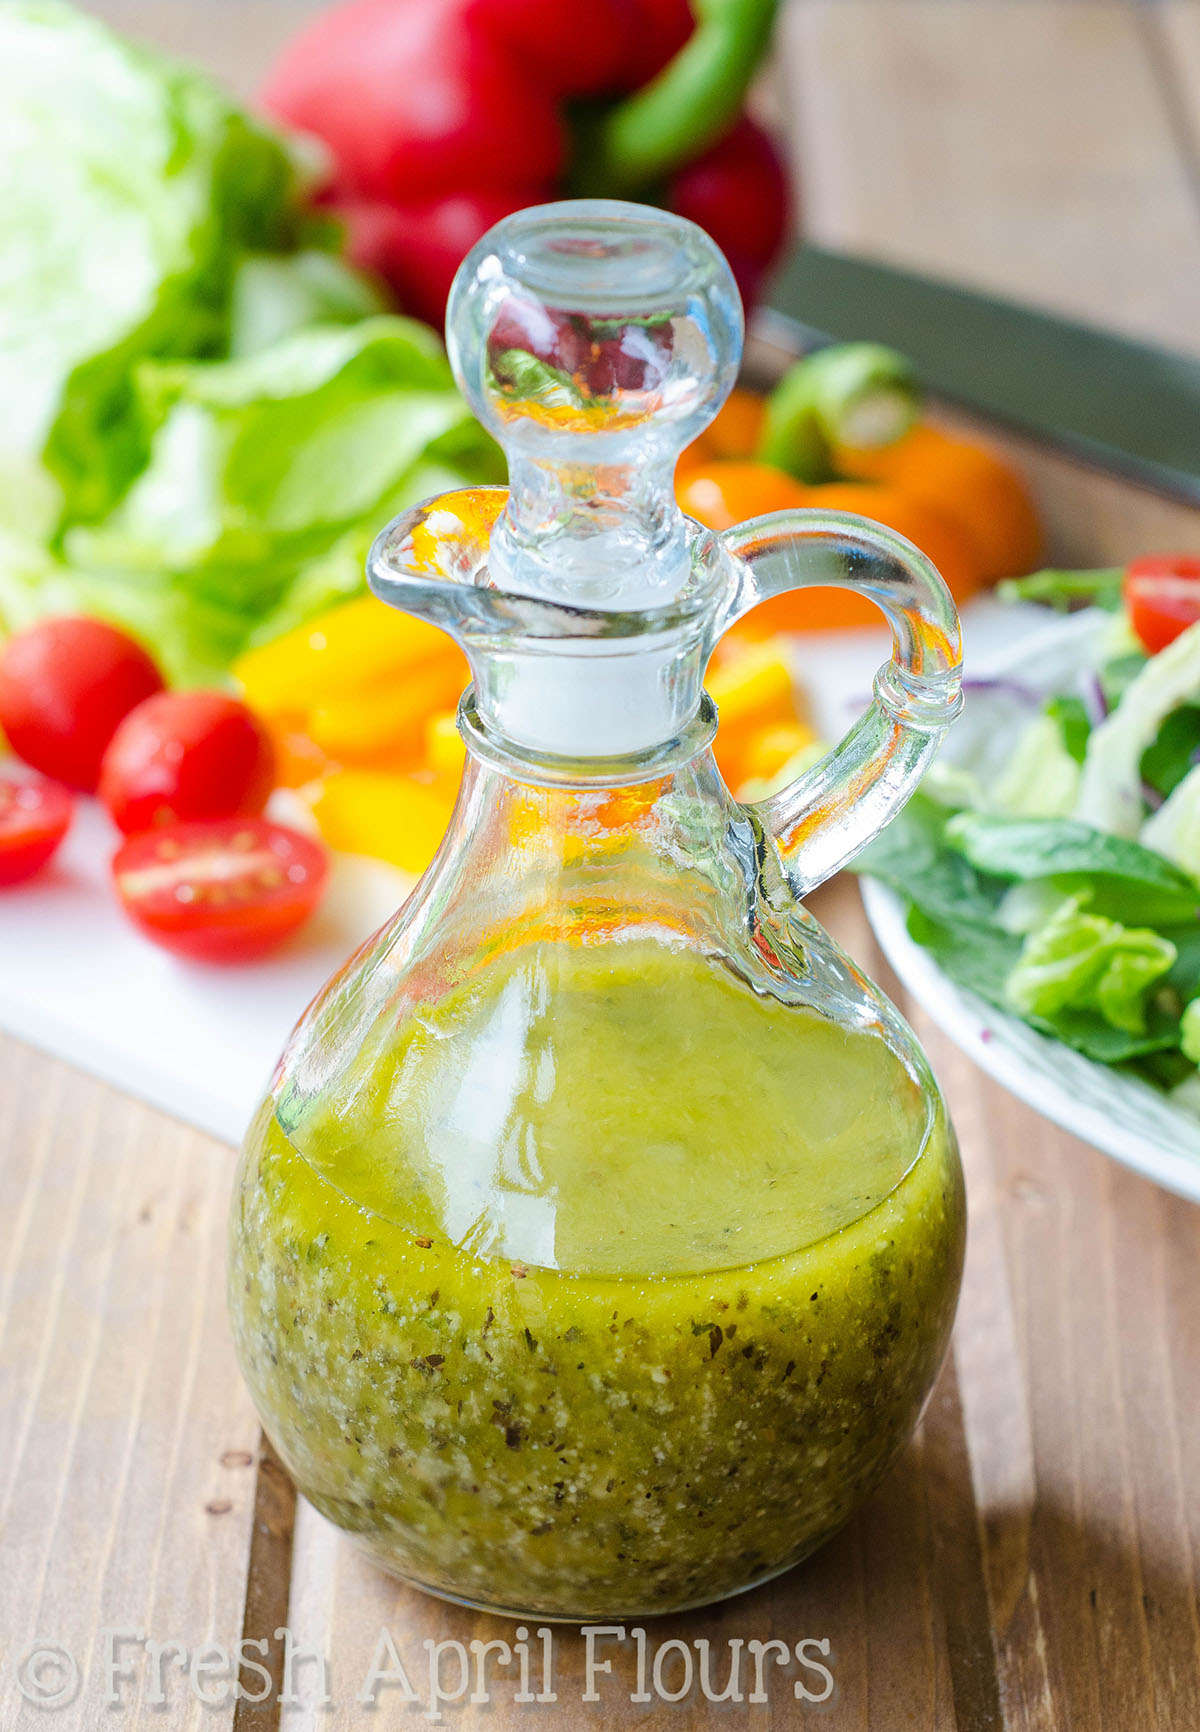 Homemade Italian Dressing: Easy homemade Italian dressing packed with flavor and lots of herbs and spices to jazz up your fresh salads and veggies.